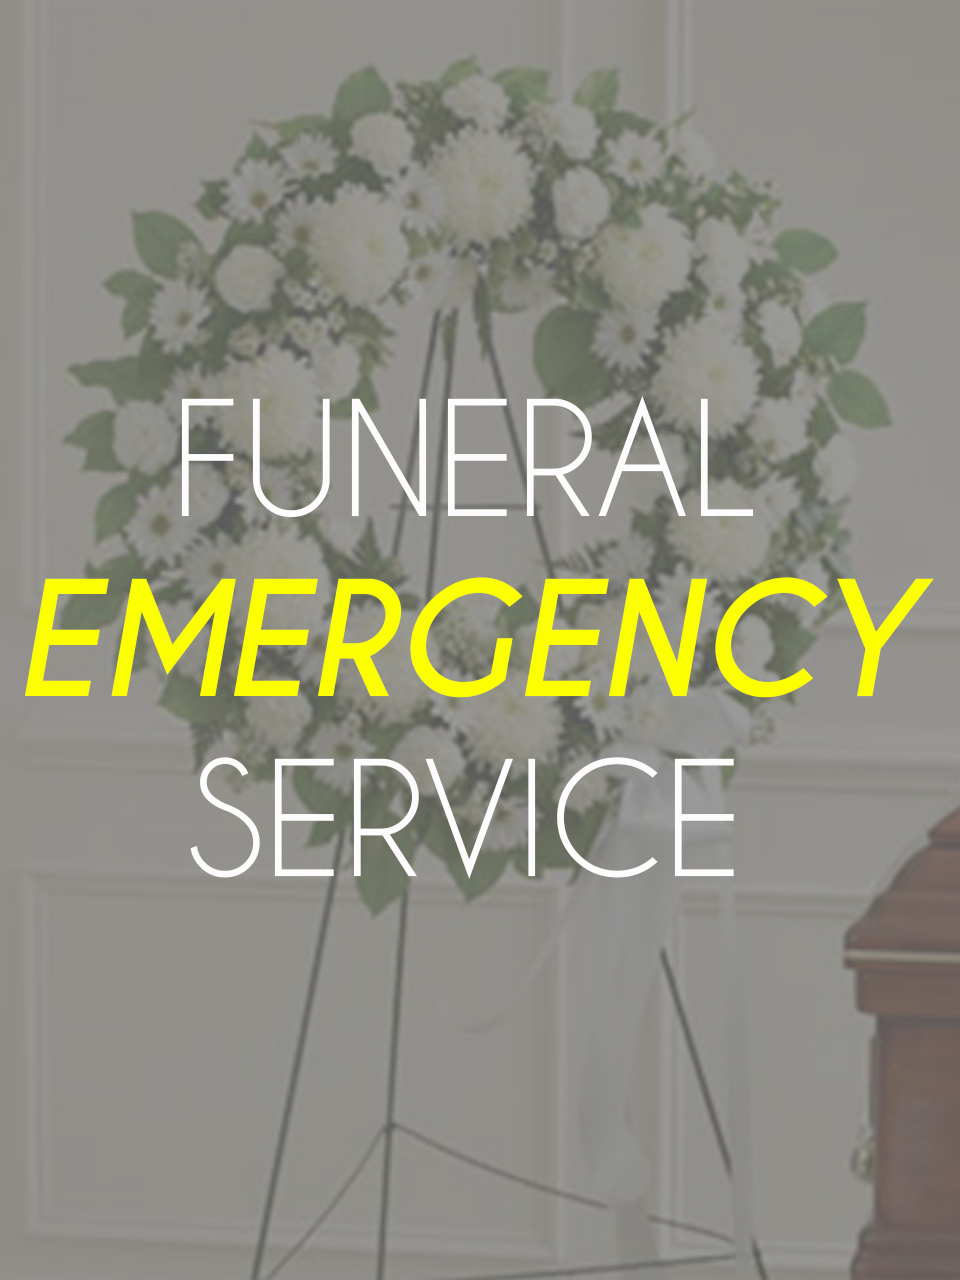 Funeral-Emergency-Services-2-1